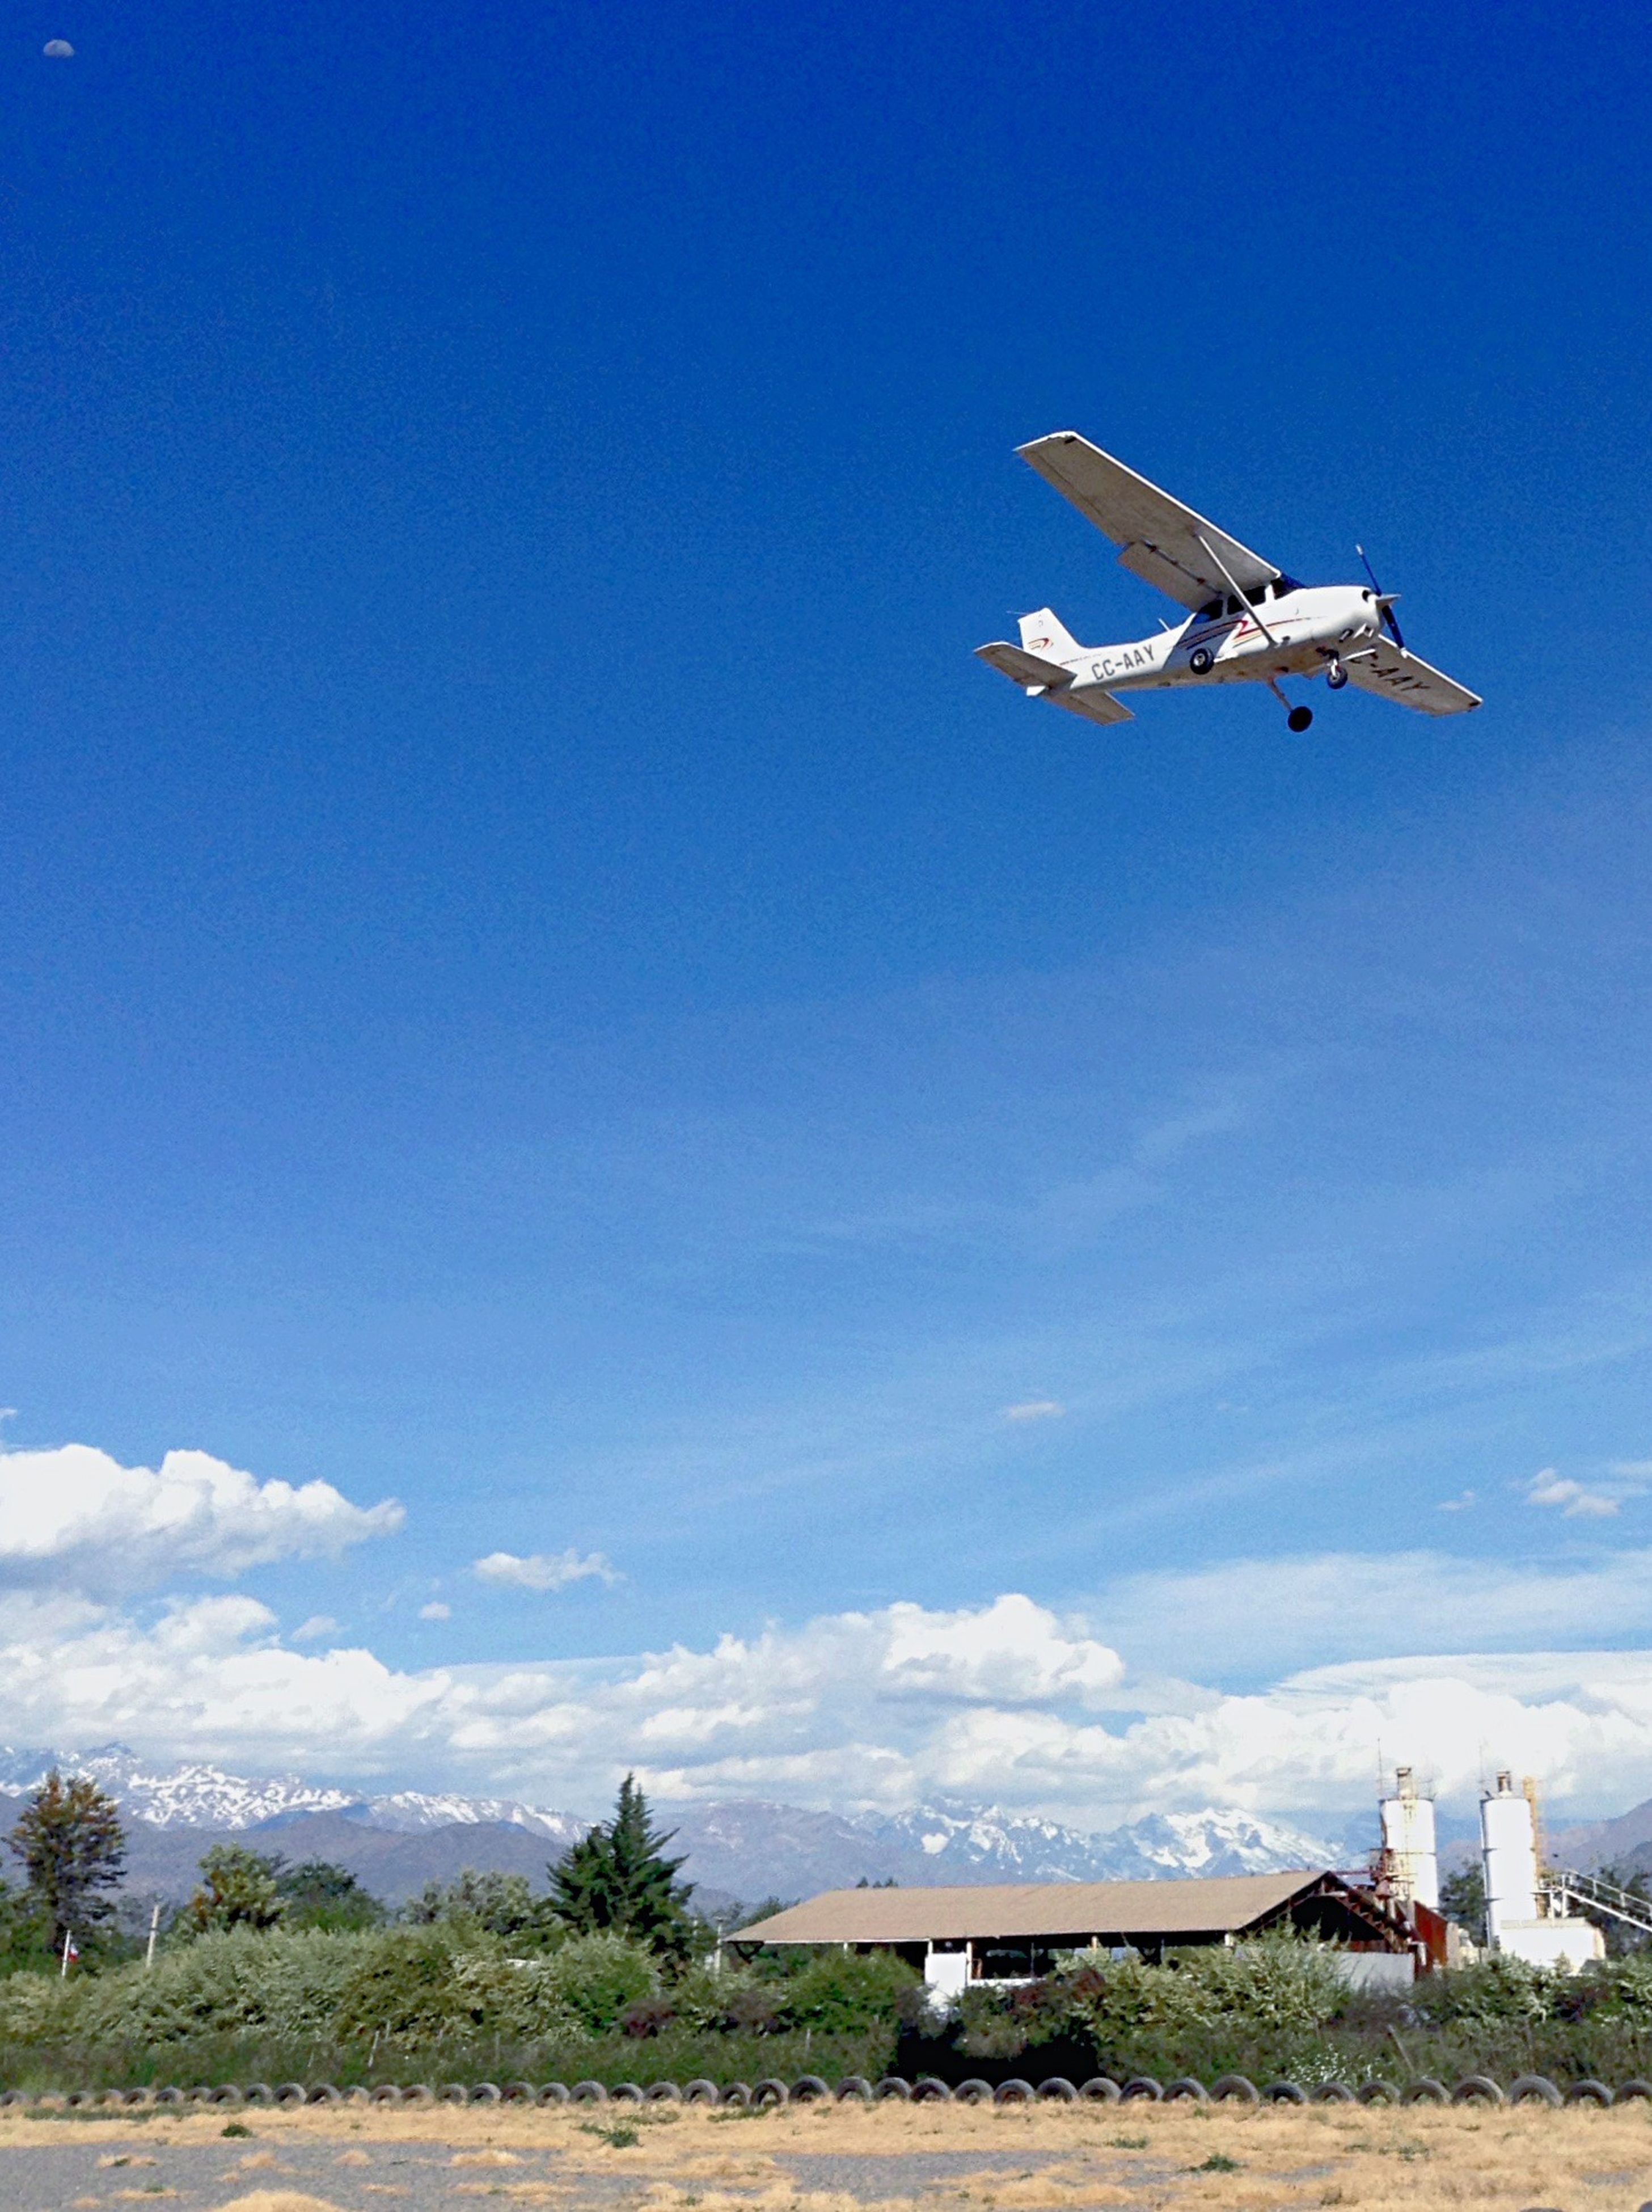 flying, blue, sky, landscape, transportation, outdoors, tranquil scene, nature, non-urban scene, tranquility, scenics, cloud - sky, day, beauty in nature